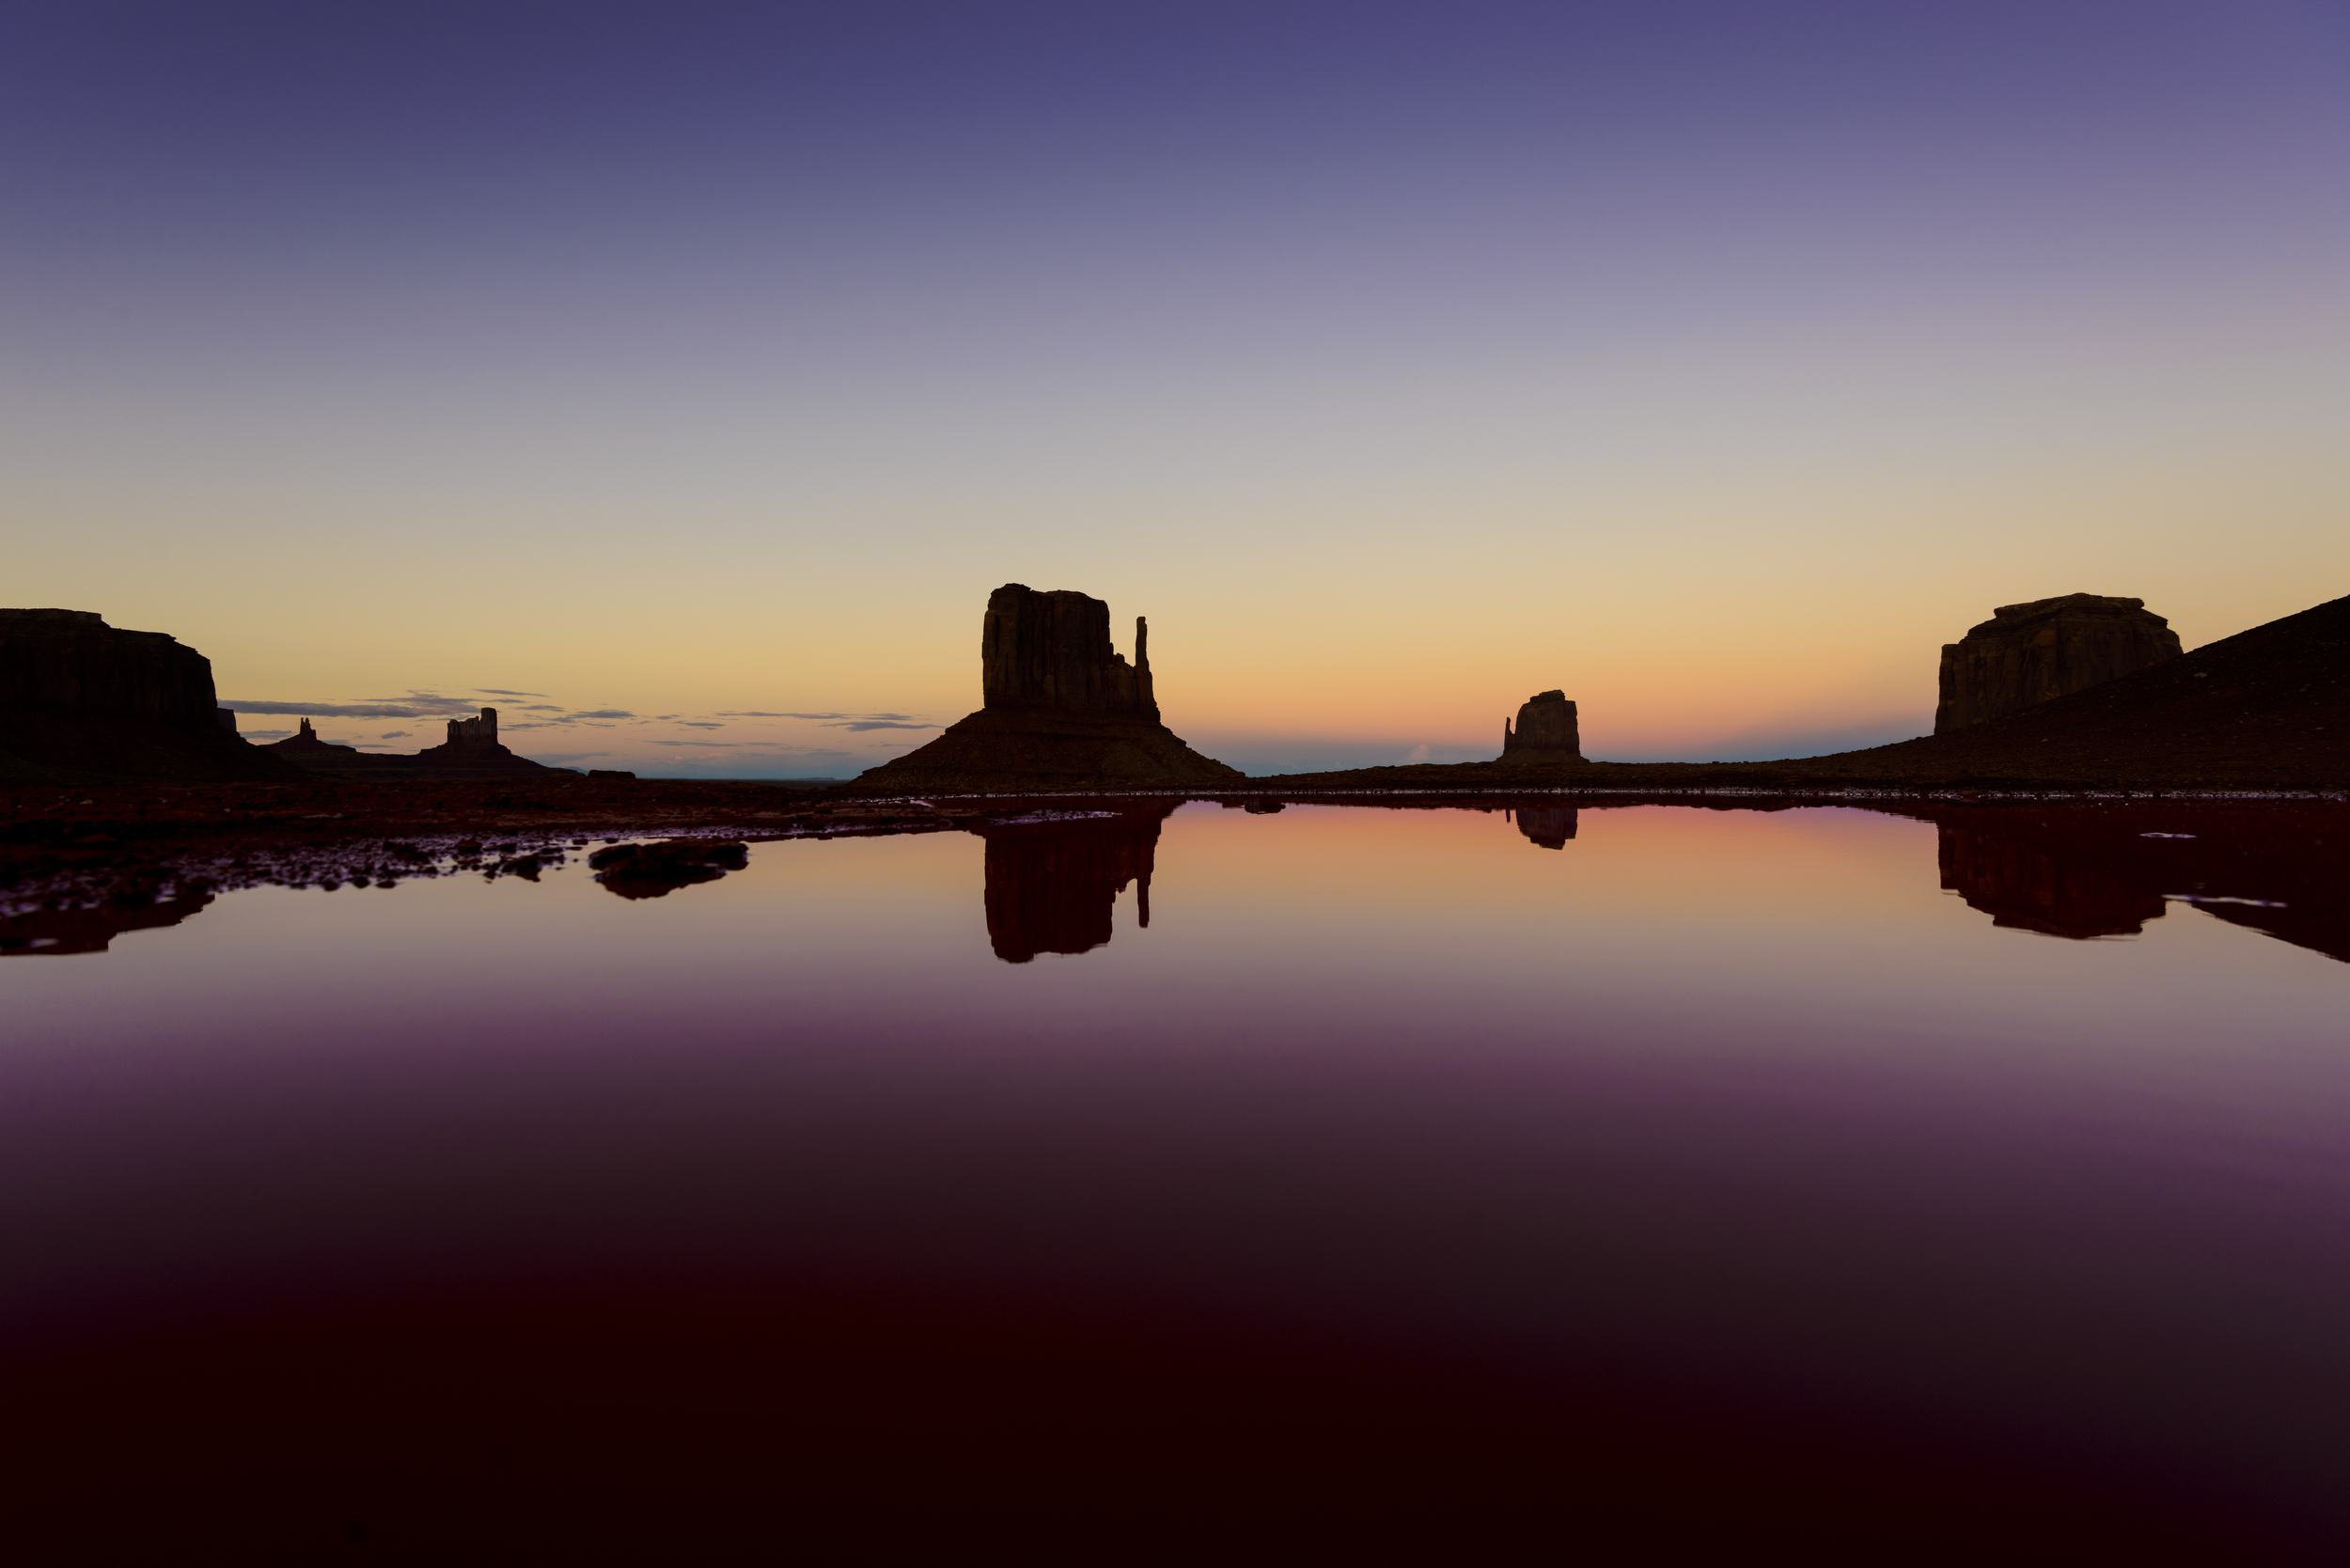 Monument Valley dusk and sunset with reflection